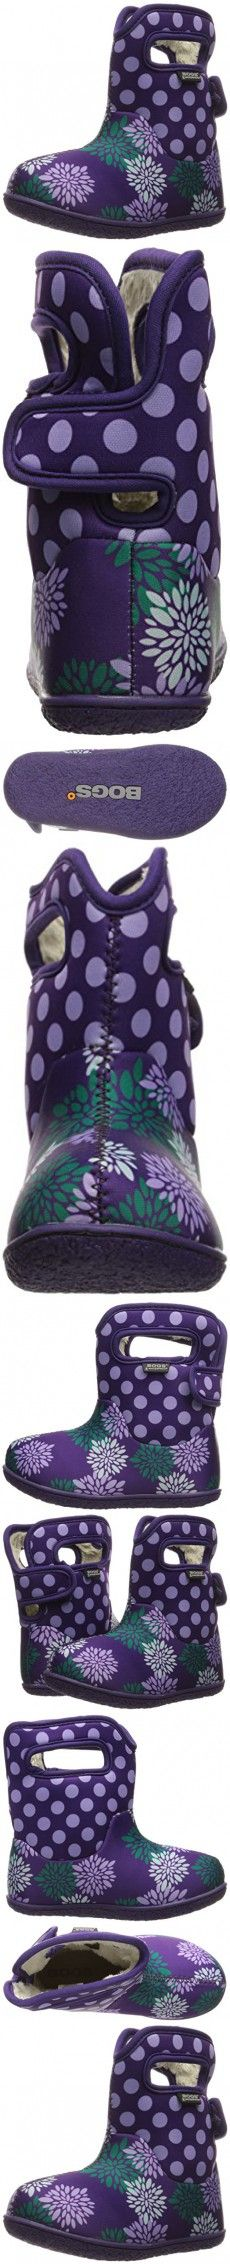 Bogs Baby Classic Pompon Dot Winter Snow Boot (Toddler),  Grape/Multi, 10 M US Toddler